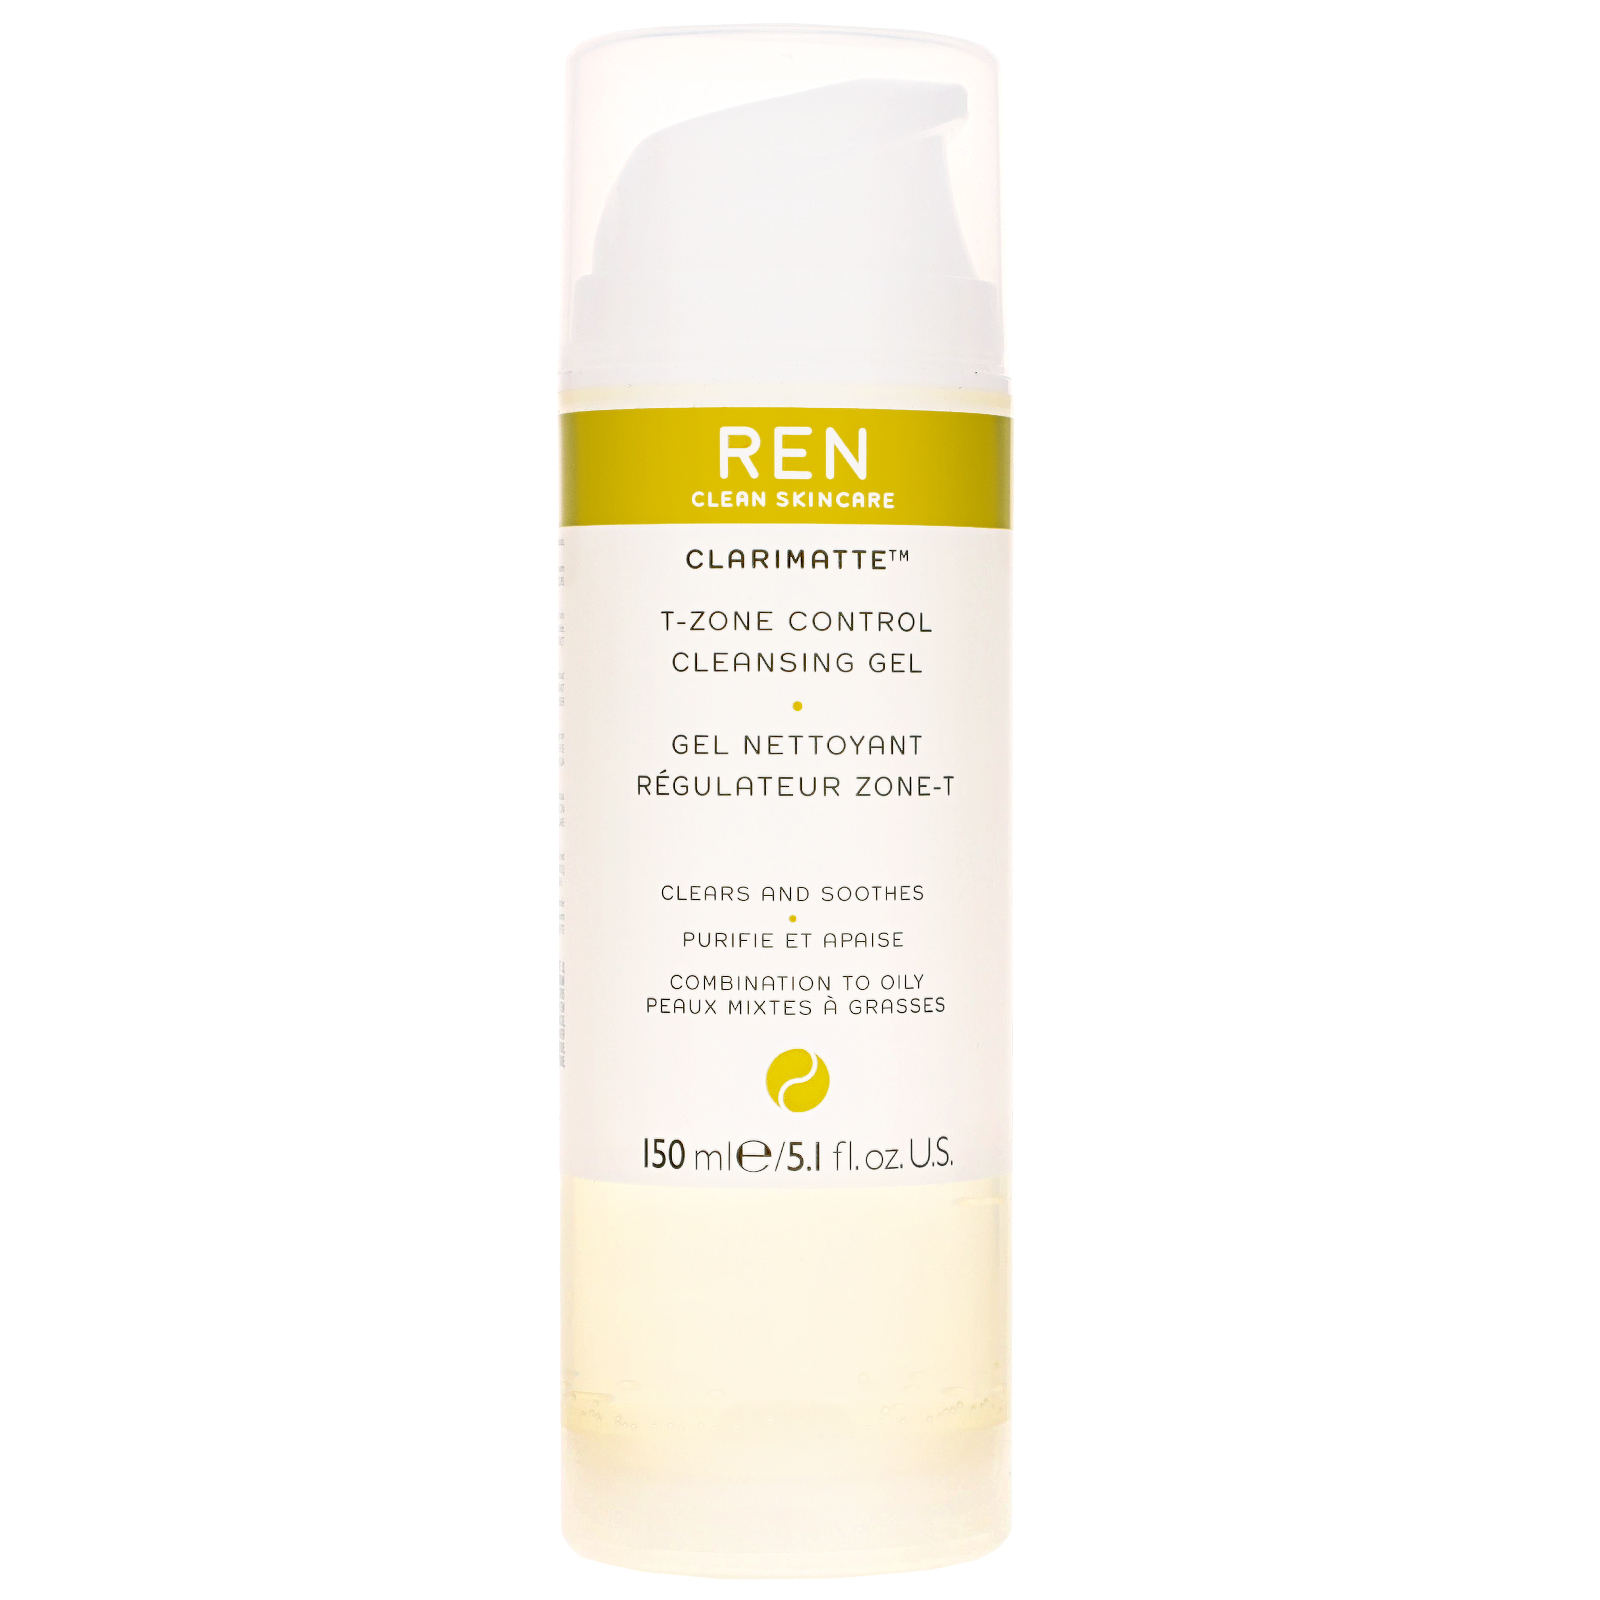 REN Clean Skincare Face Clarimatte T-Zone Control Cleansing Gel 150ml / 5.1 fl.oz.